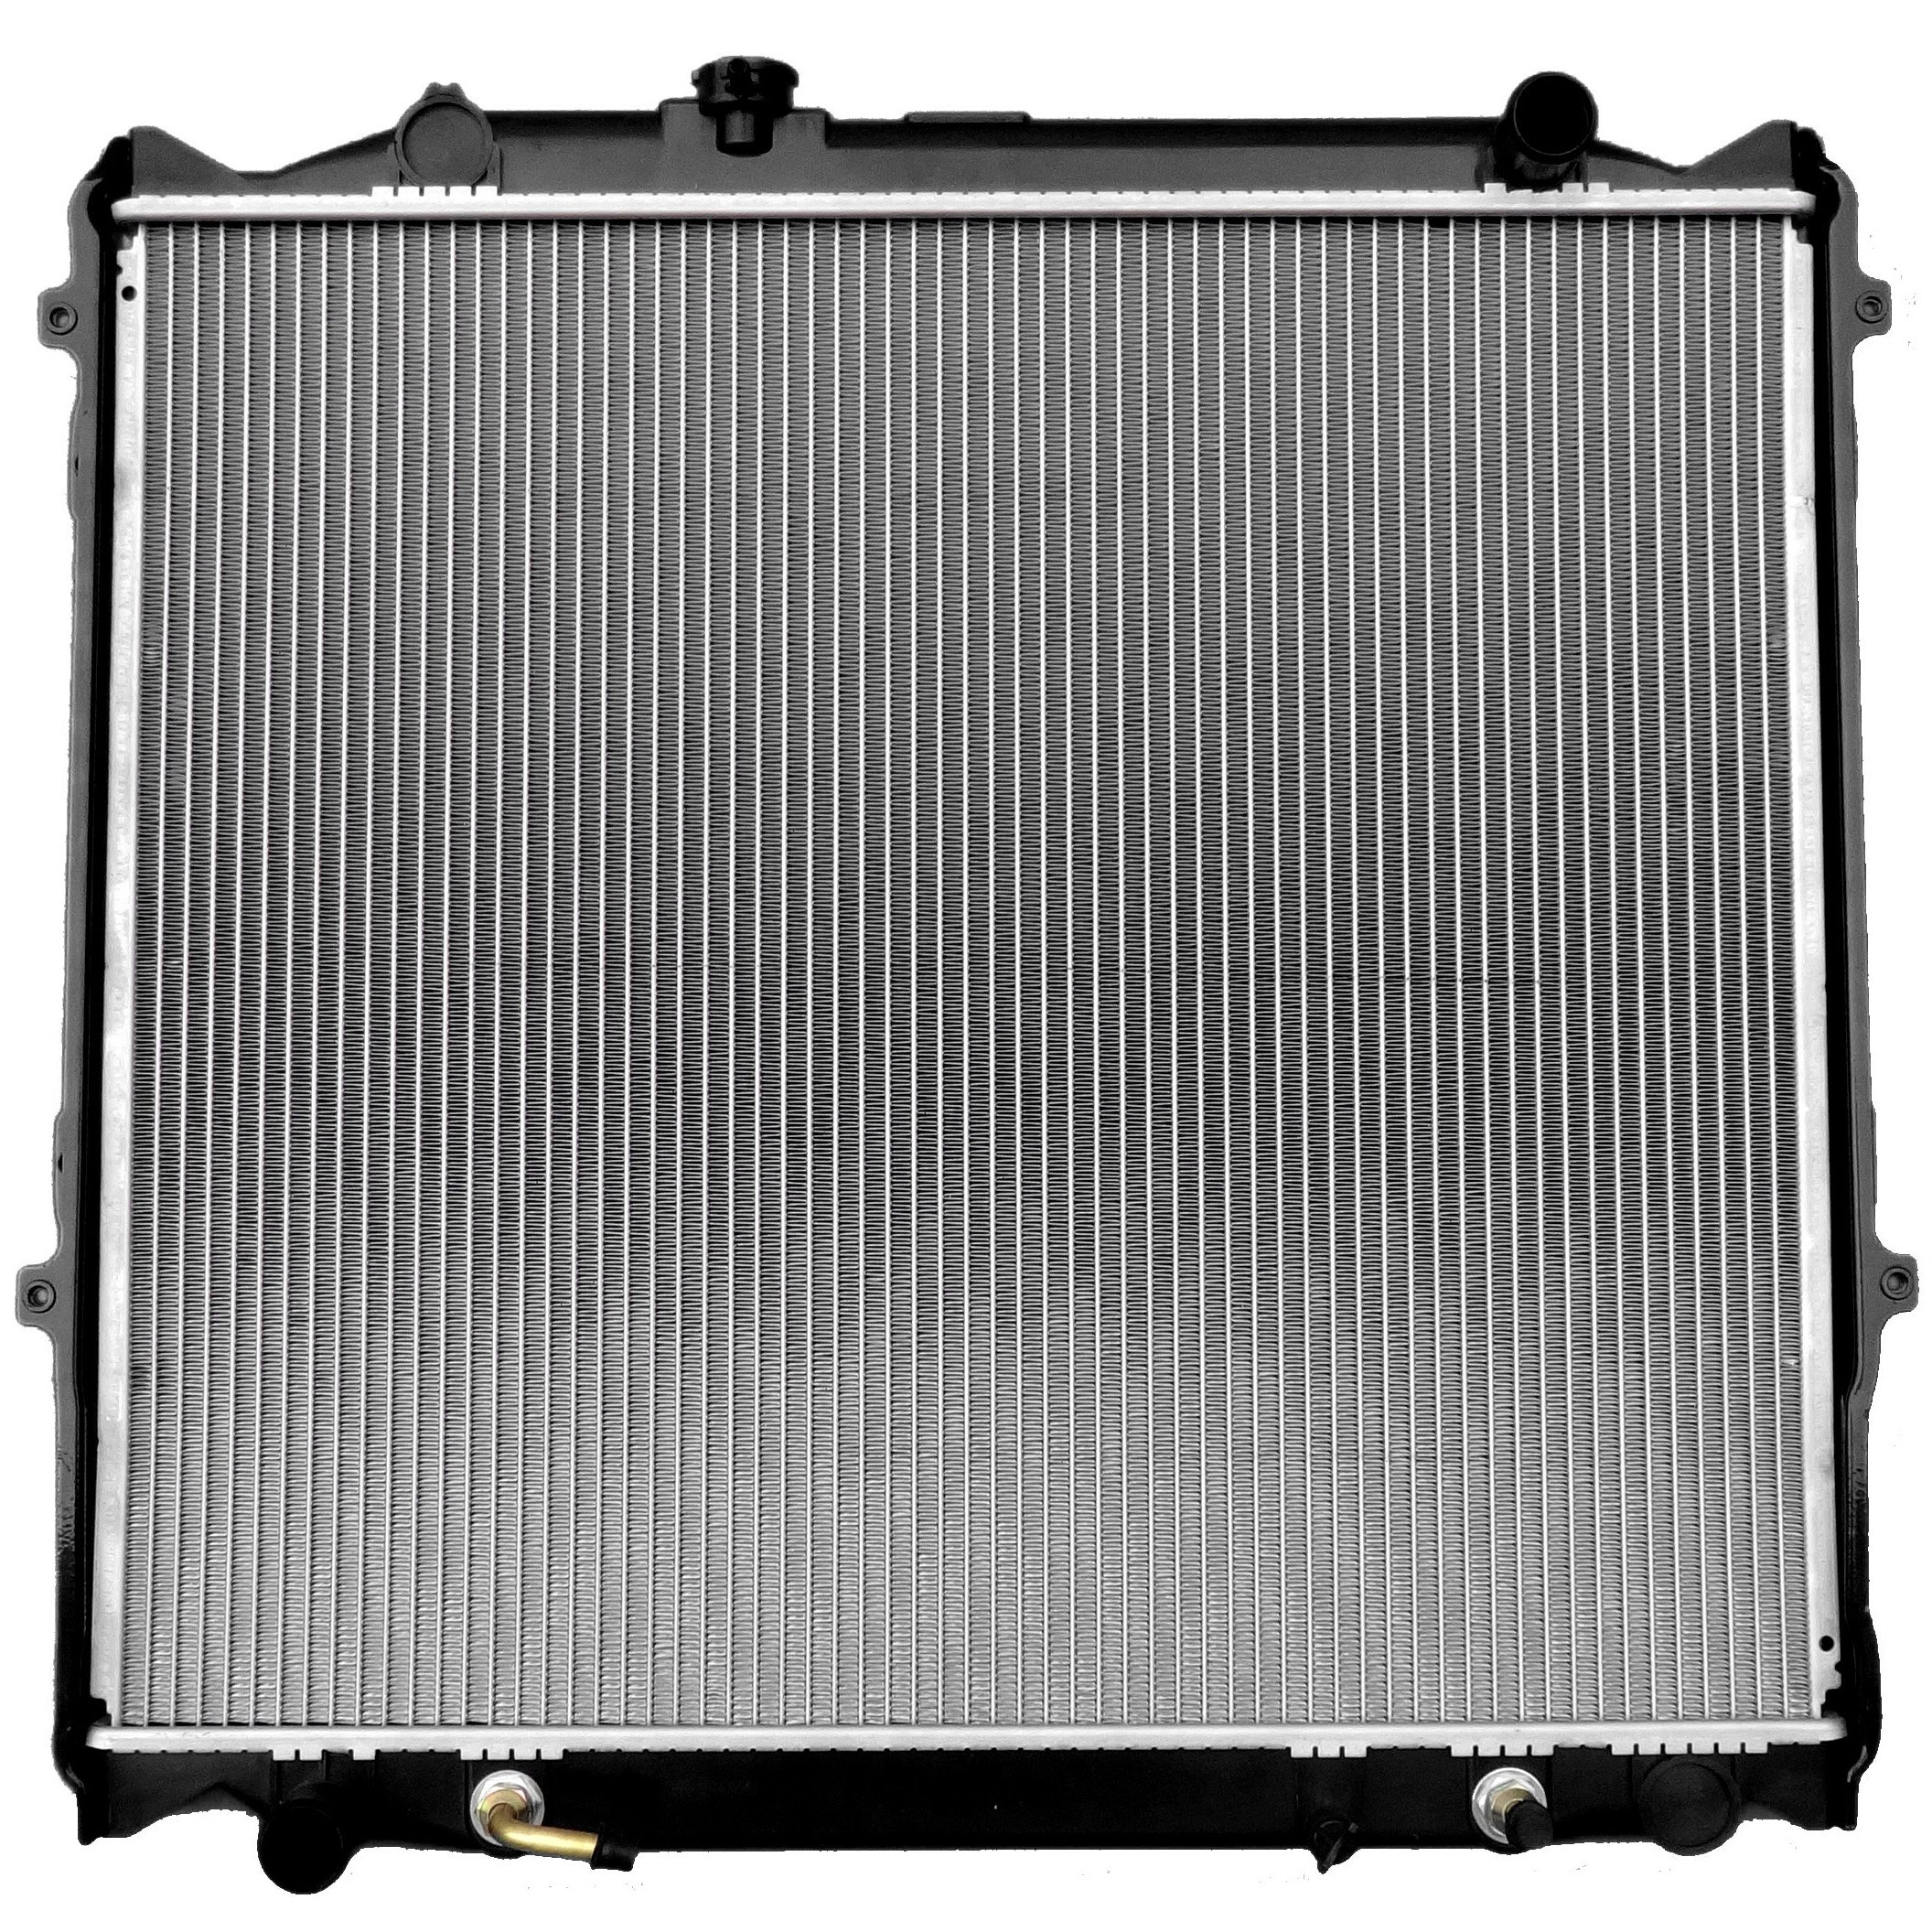 ECCPP 1998 Radiator fits for 1996-2002 Toyota 4Runner Limited/Base/SR5 Sport Utility 4-Door 2.7L 3.4L